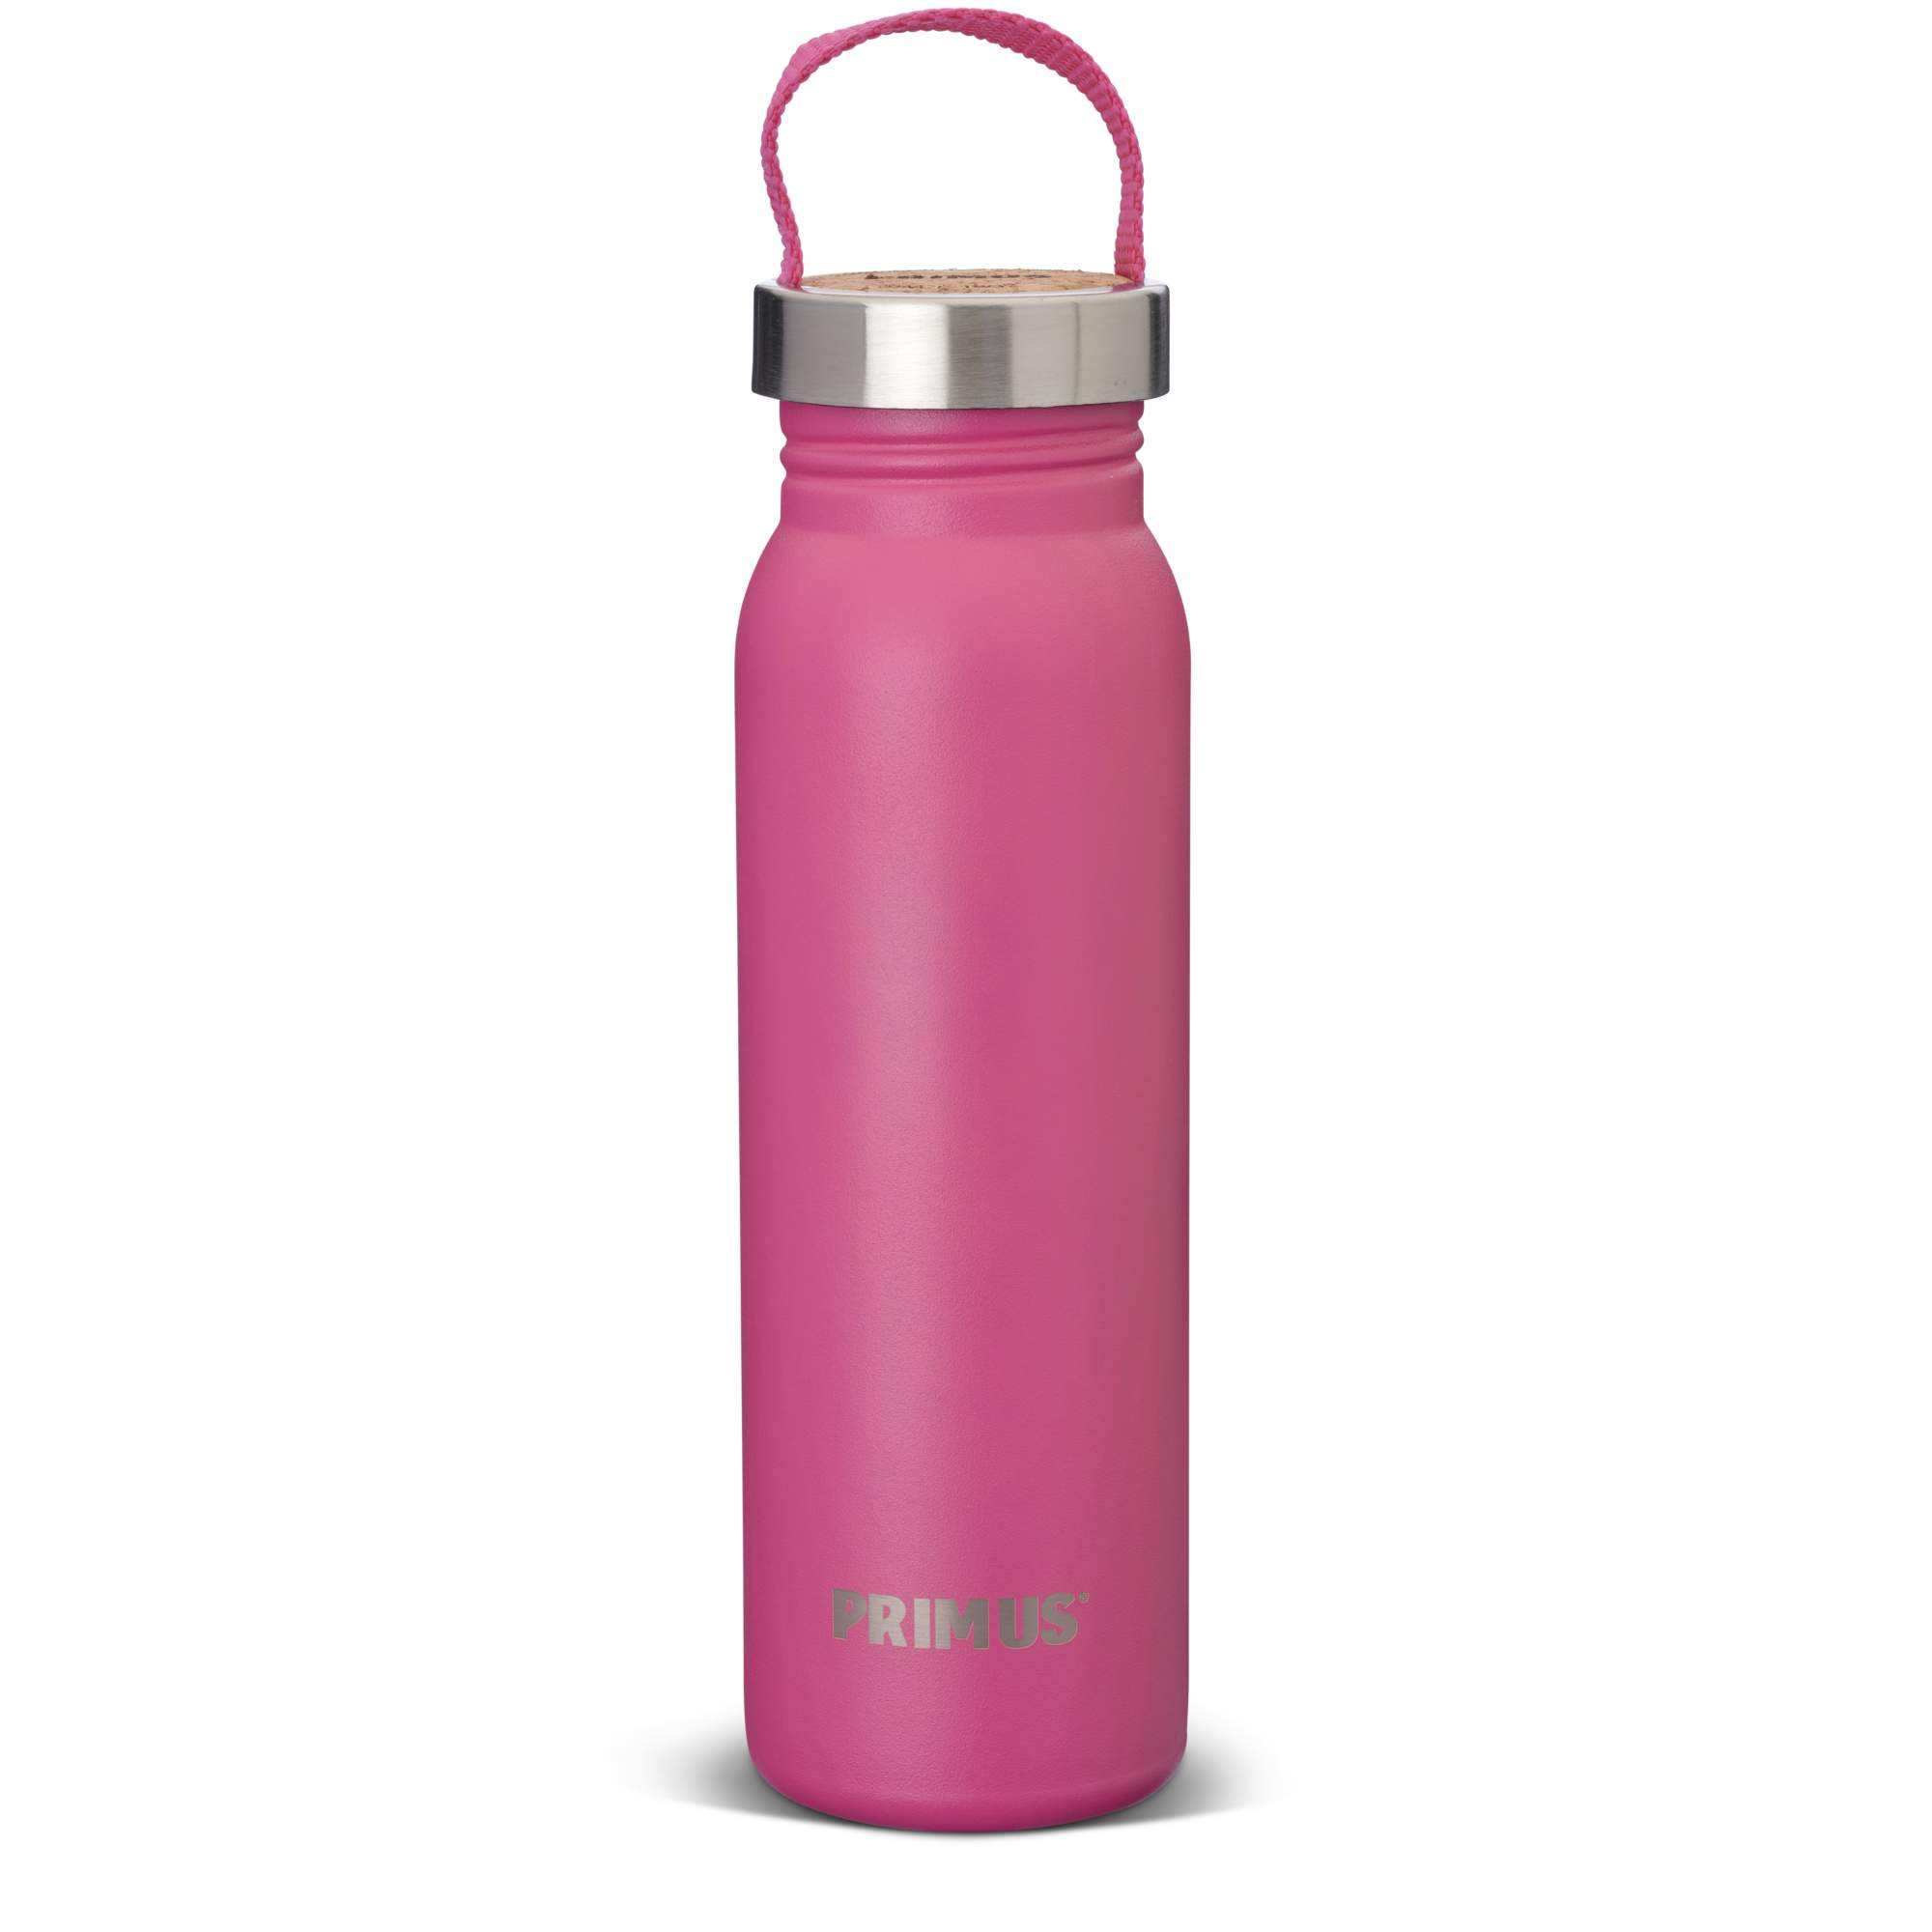 Primus Klunken Bottle 700 ml Pink